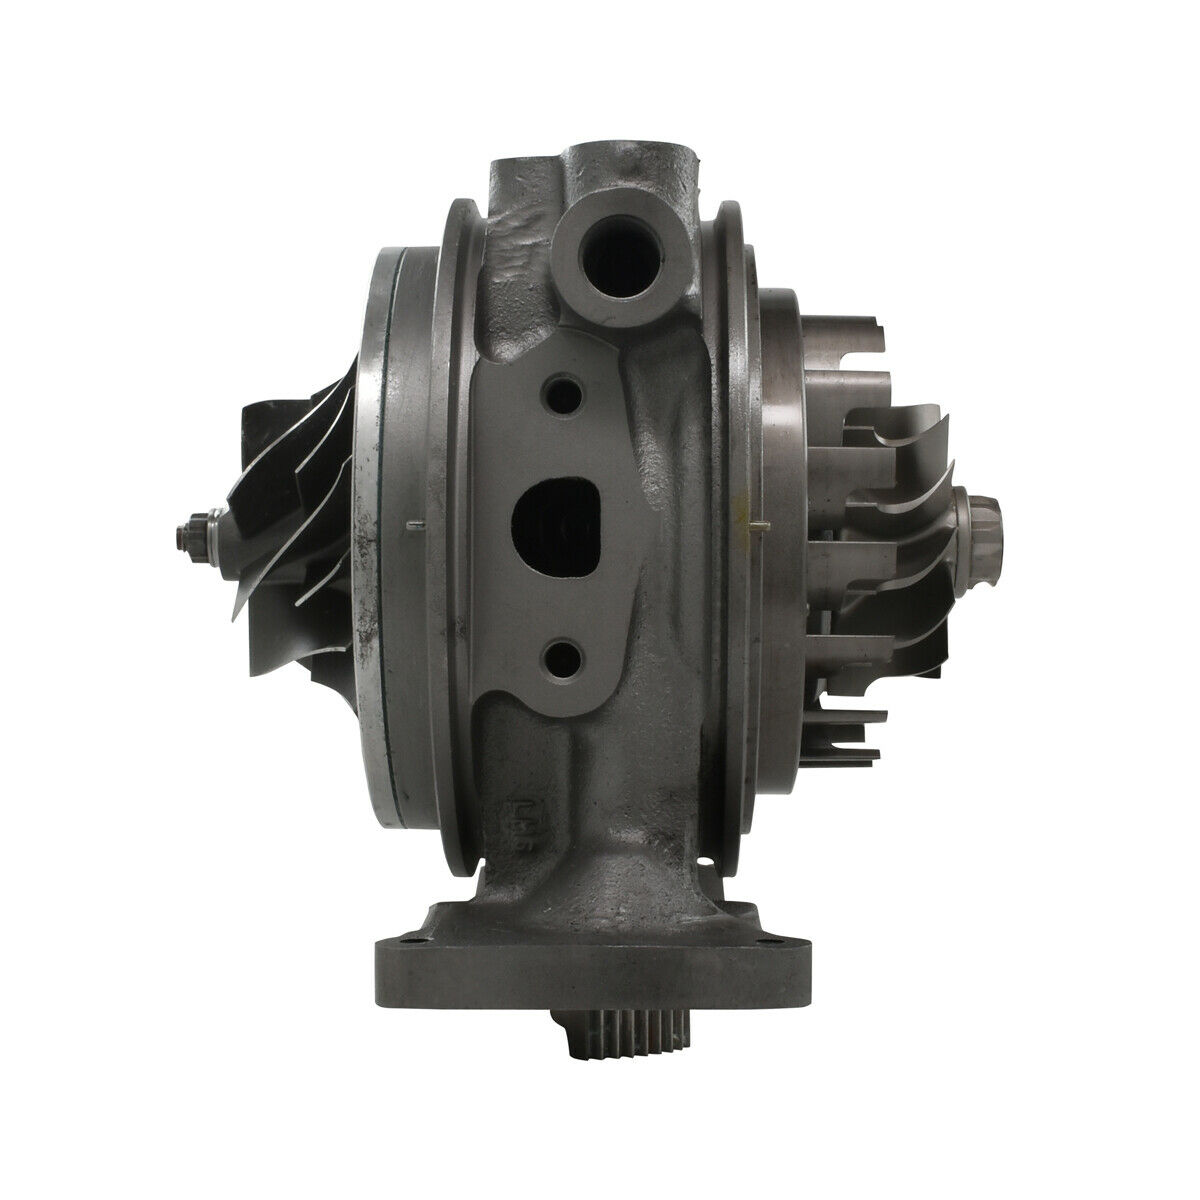 Remanufactured Stock HE351VE Turbo CHRA For 07-12 6.7L Dodge Ram Cummins Diesel